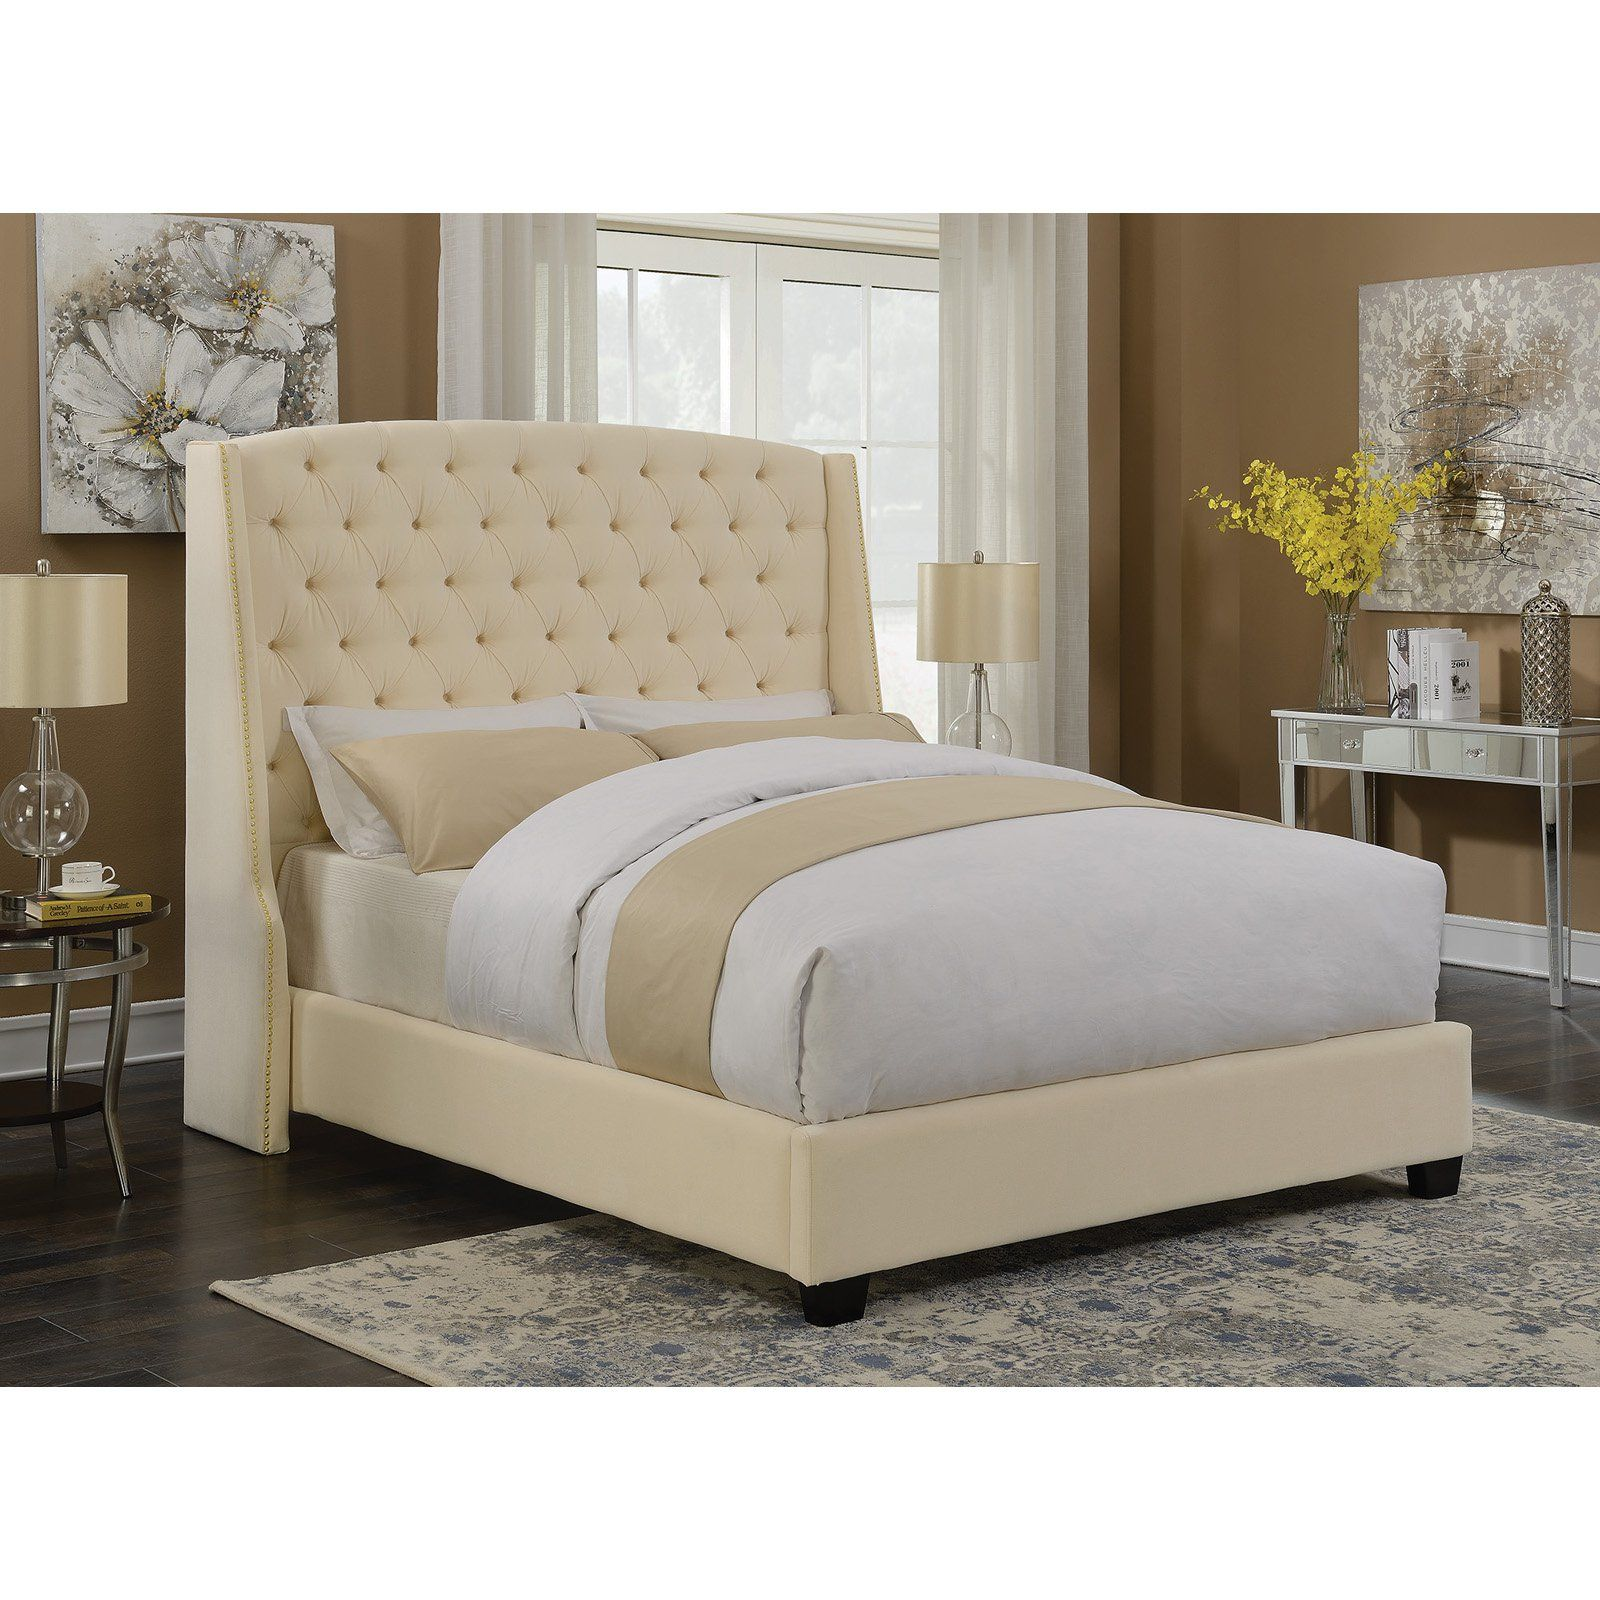 a2c31a9c6 Coaster Furniture Pissarro Upholstered Panel Bed Cream, Size: California  King